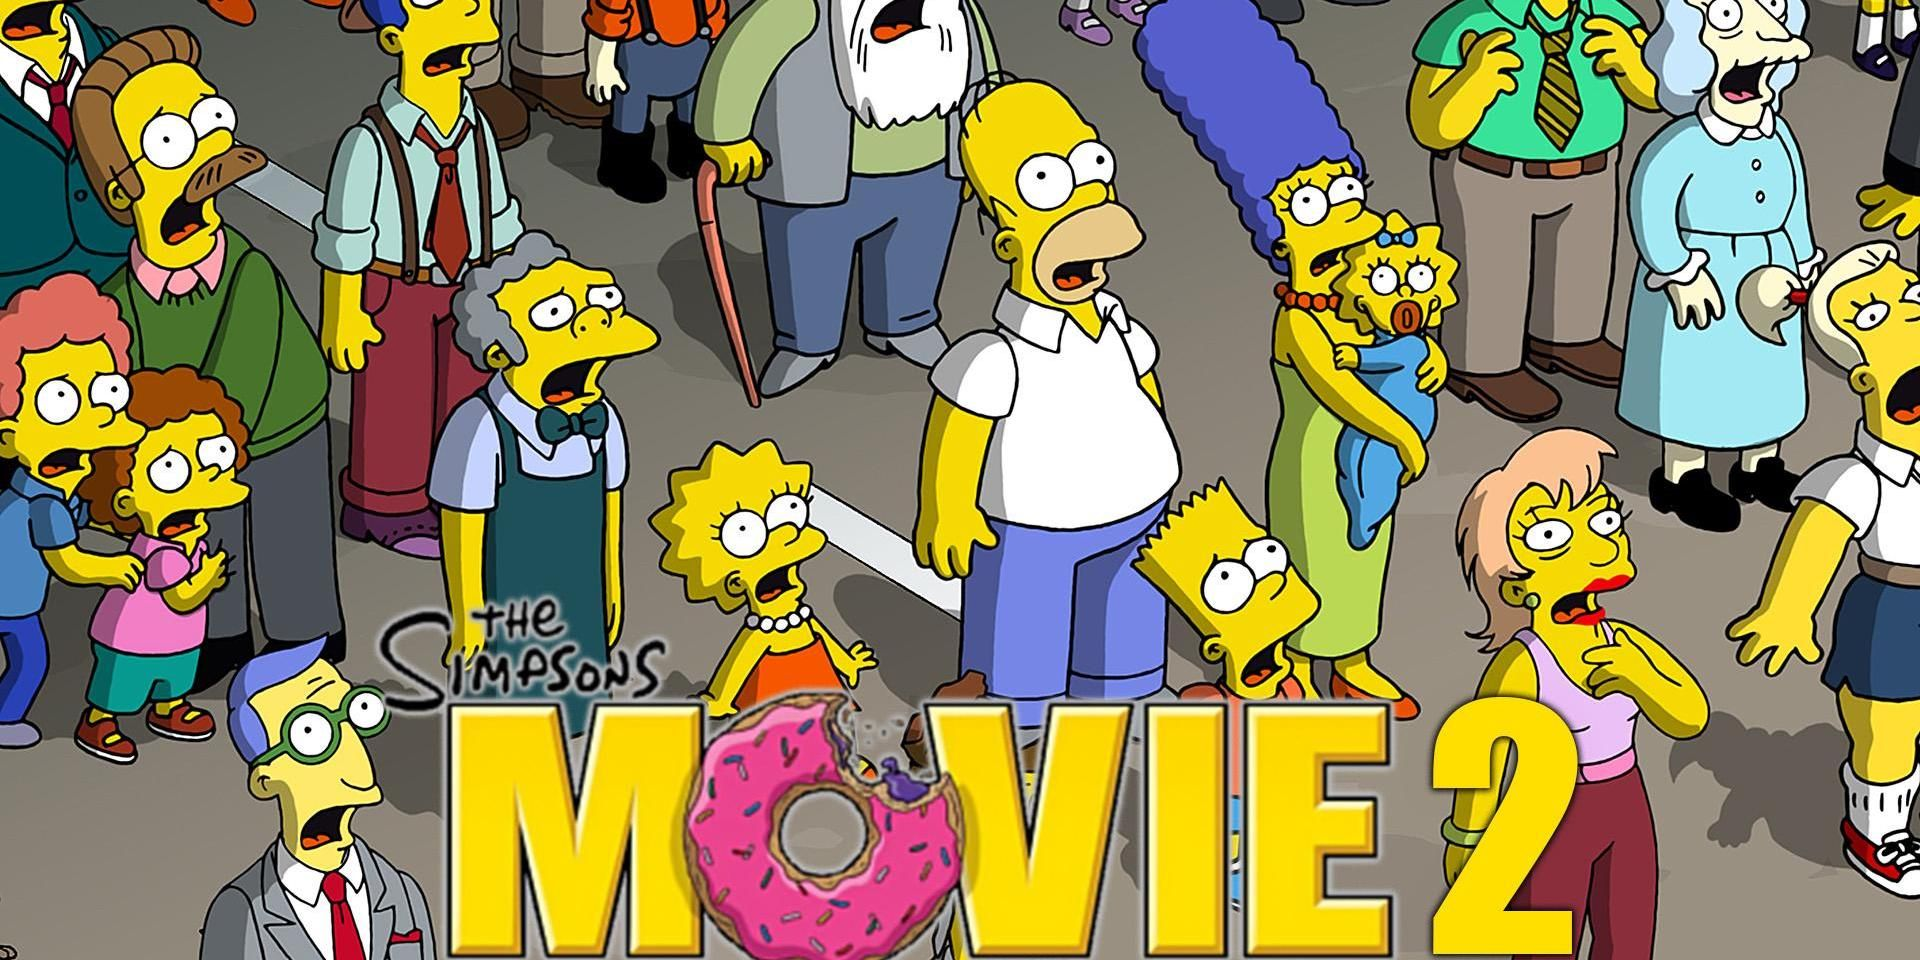 Is The Simpsons Movie 2 Coming Soon?